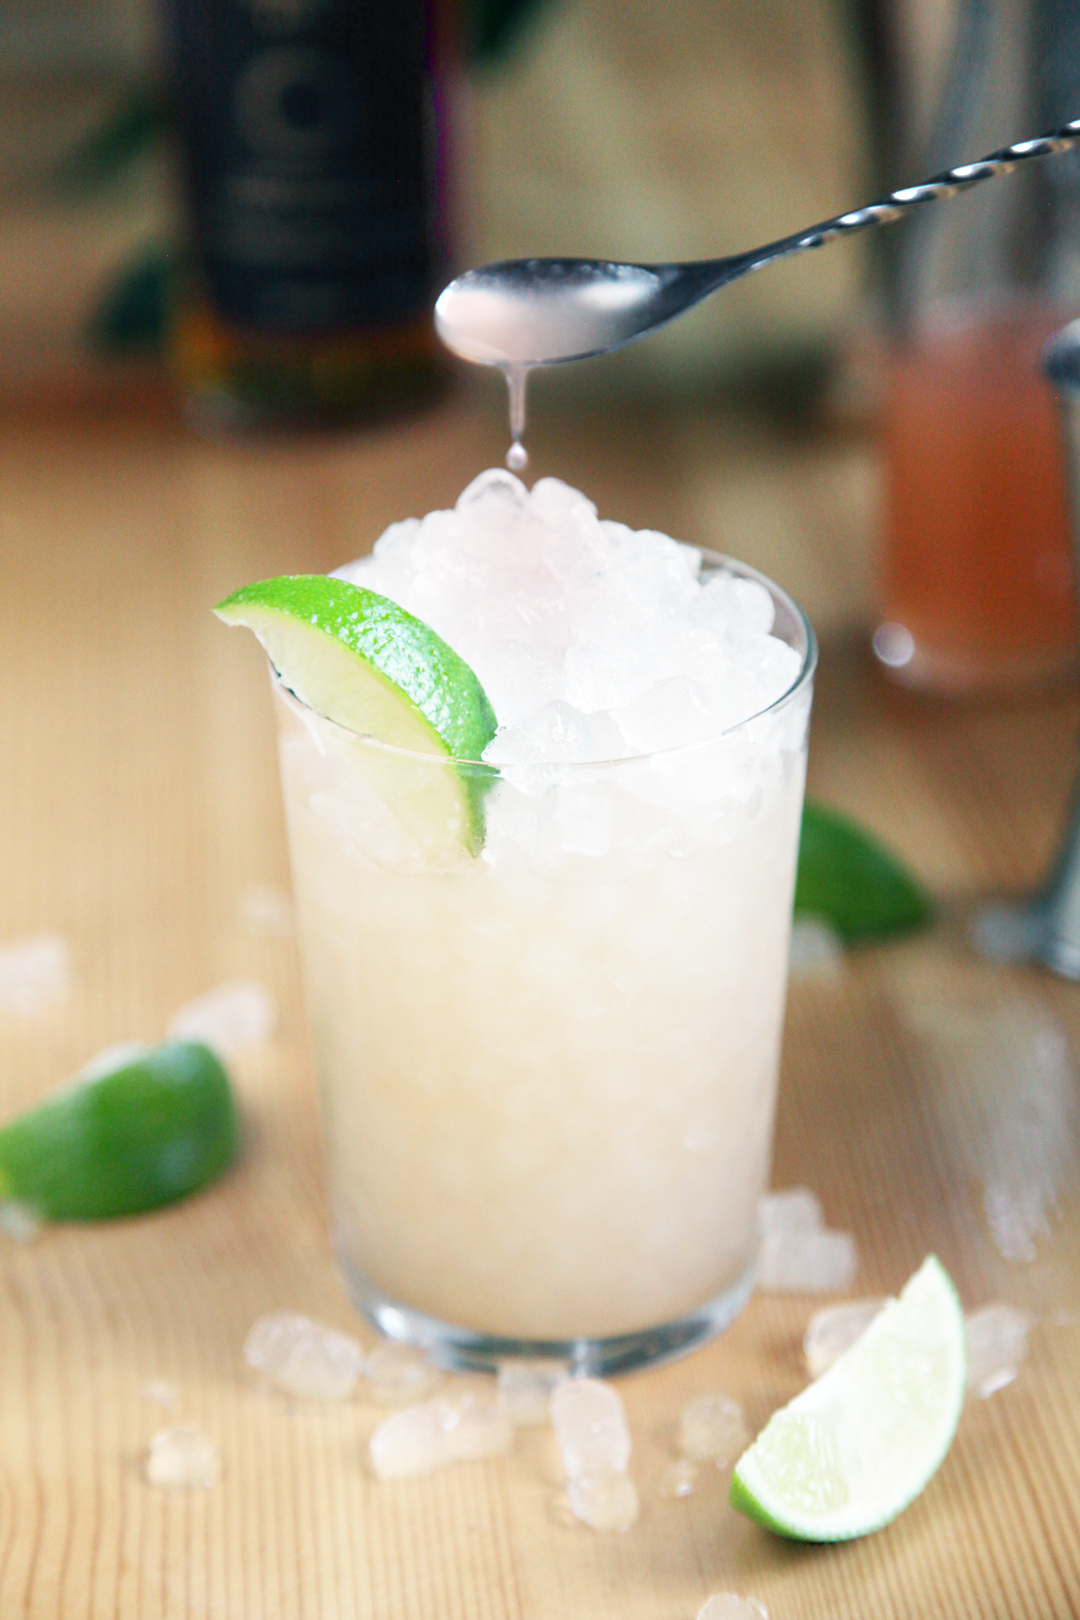 Voila! A wonderfully fresh and delicious drink. If you want it a tad sweeter feel free to drizzle a little extra quince syrup on the top. Cheers!